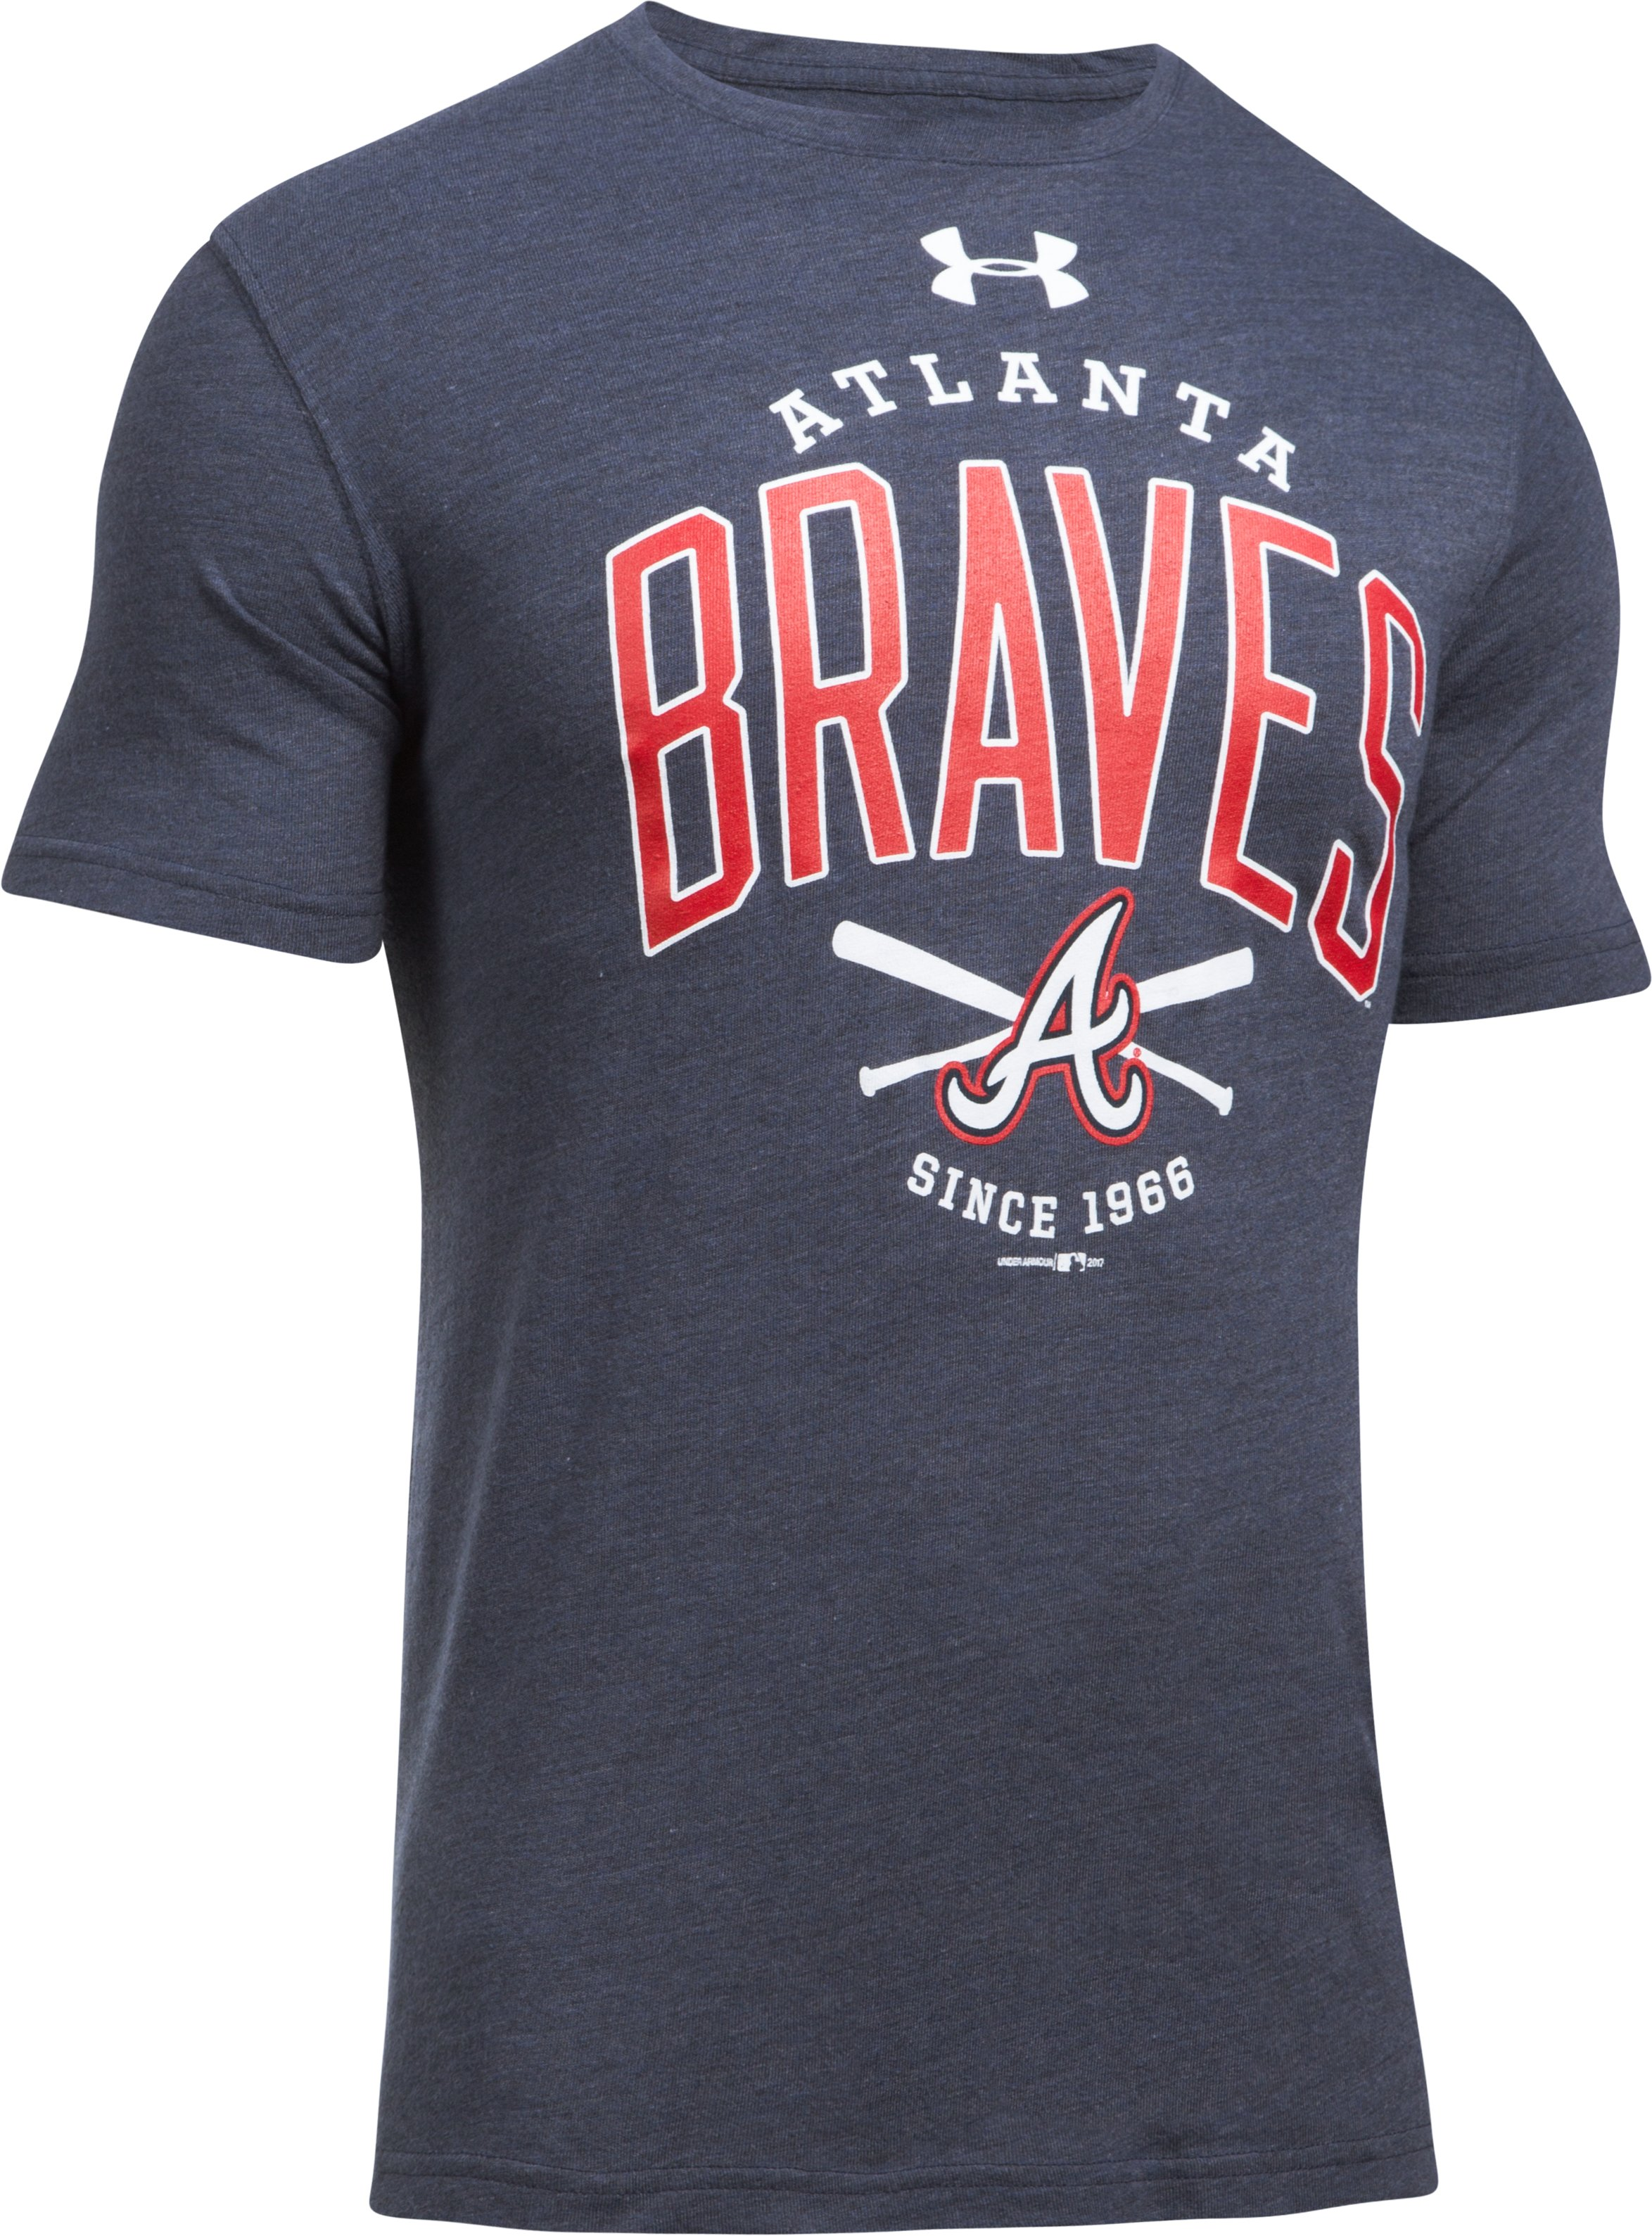 Men's Braves Tri-Blend T-Shirt, Midnight Navy,